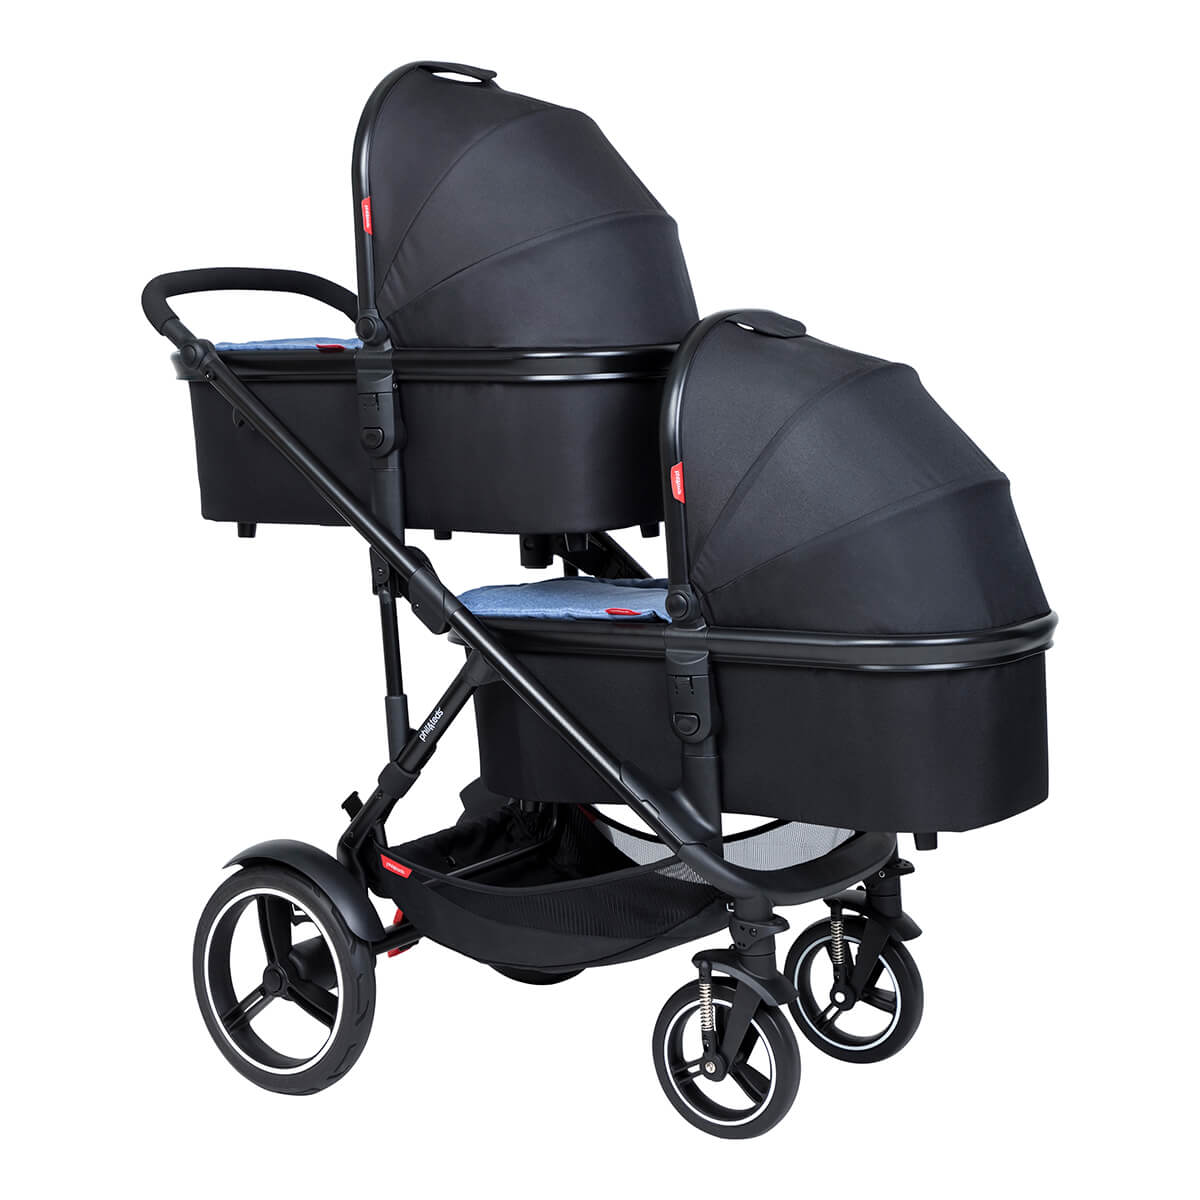 https://cdn.accentuate.io/4381204447309/19466204610754/philteds-voyager-inline-buggy-with-double-snug-carrycots-v1626485502481.jpg?1200x1200